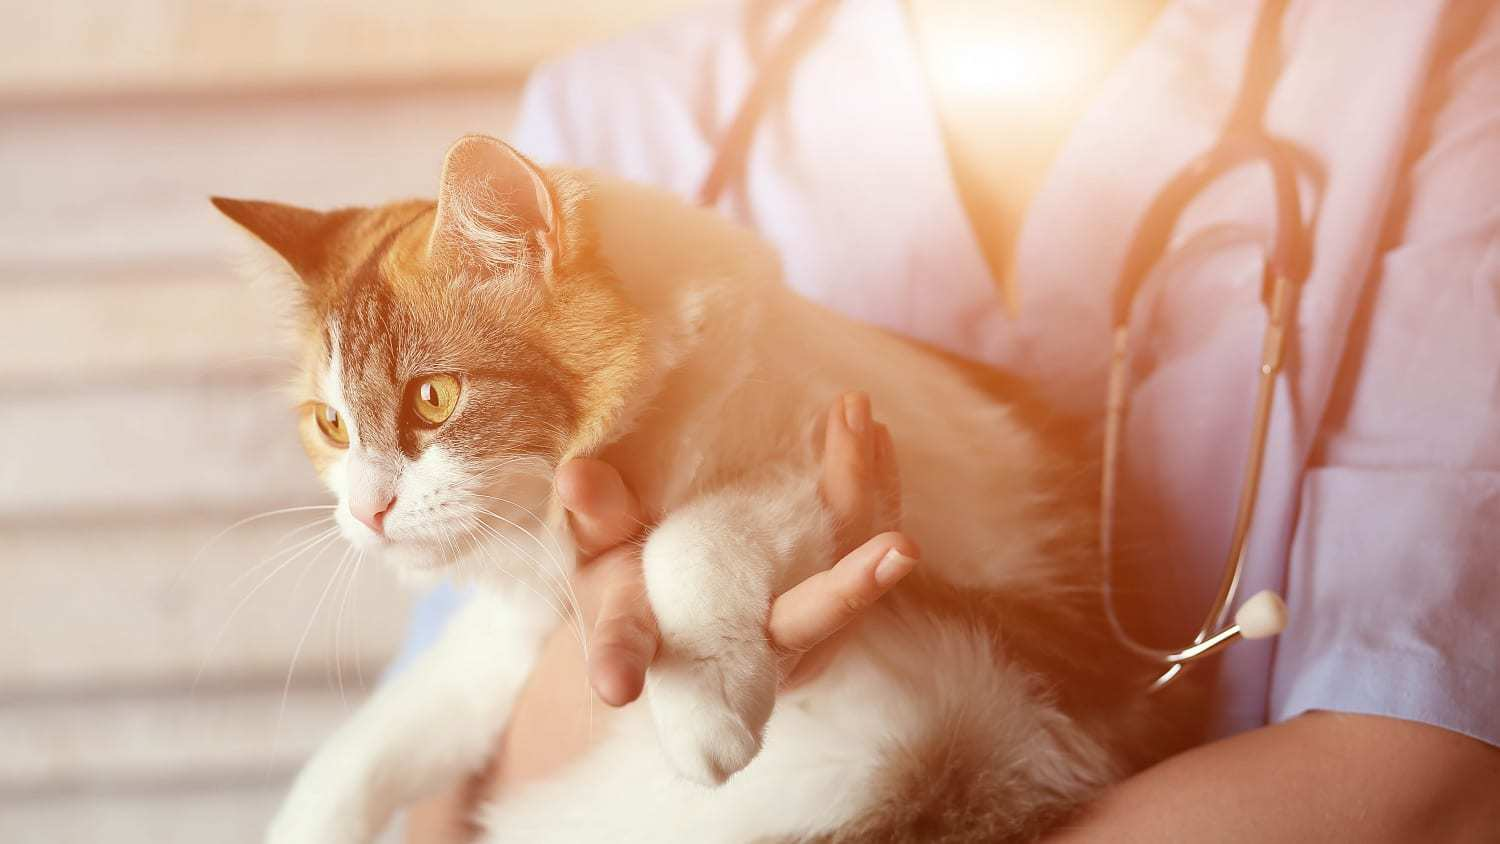 Cat health examination, what to expect